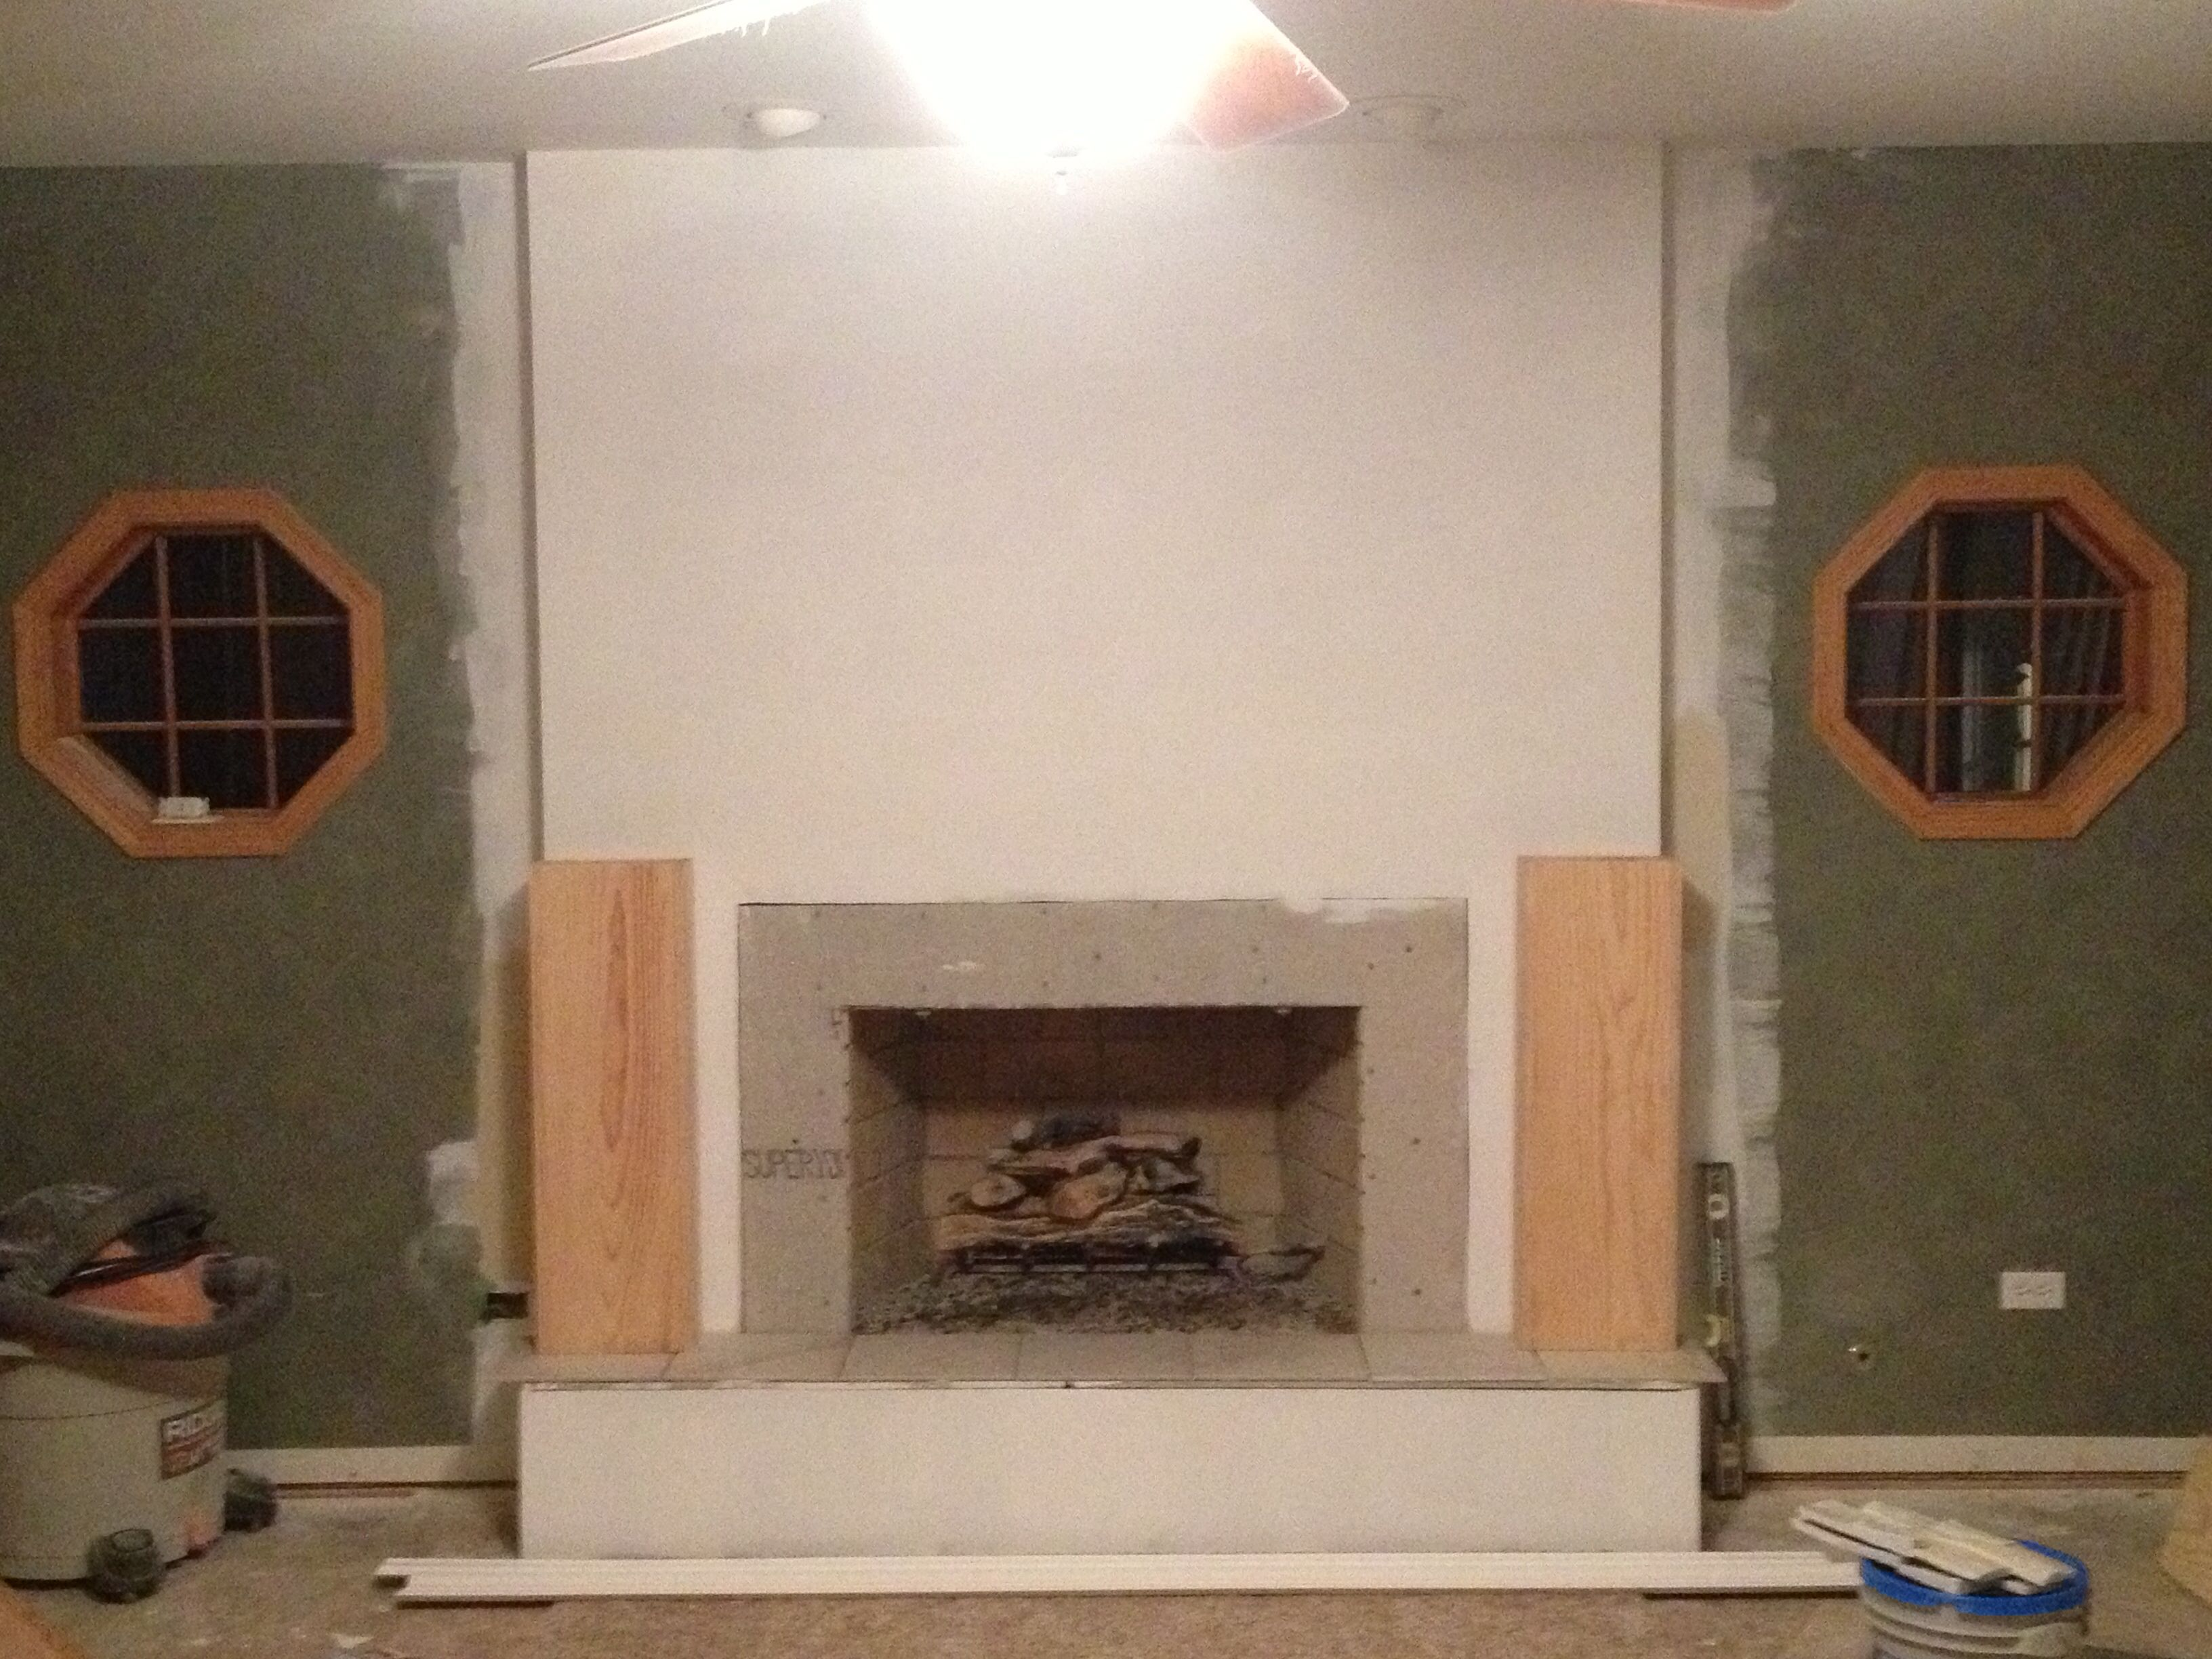 Step 3: We Covered The Raised Hearth With Tile (fireproof Material) Or You